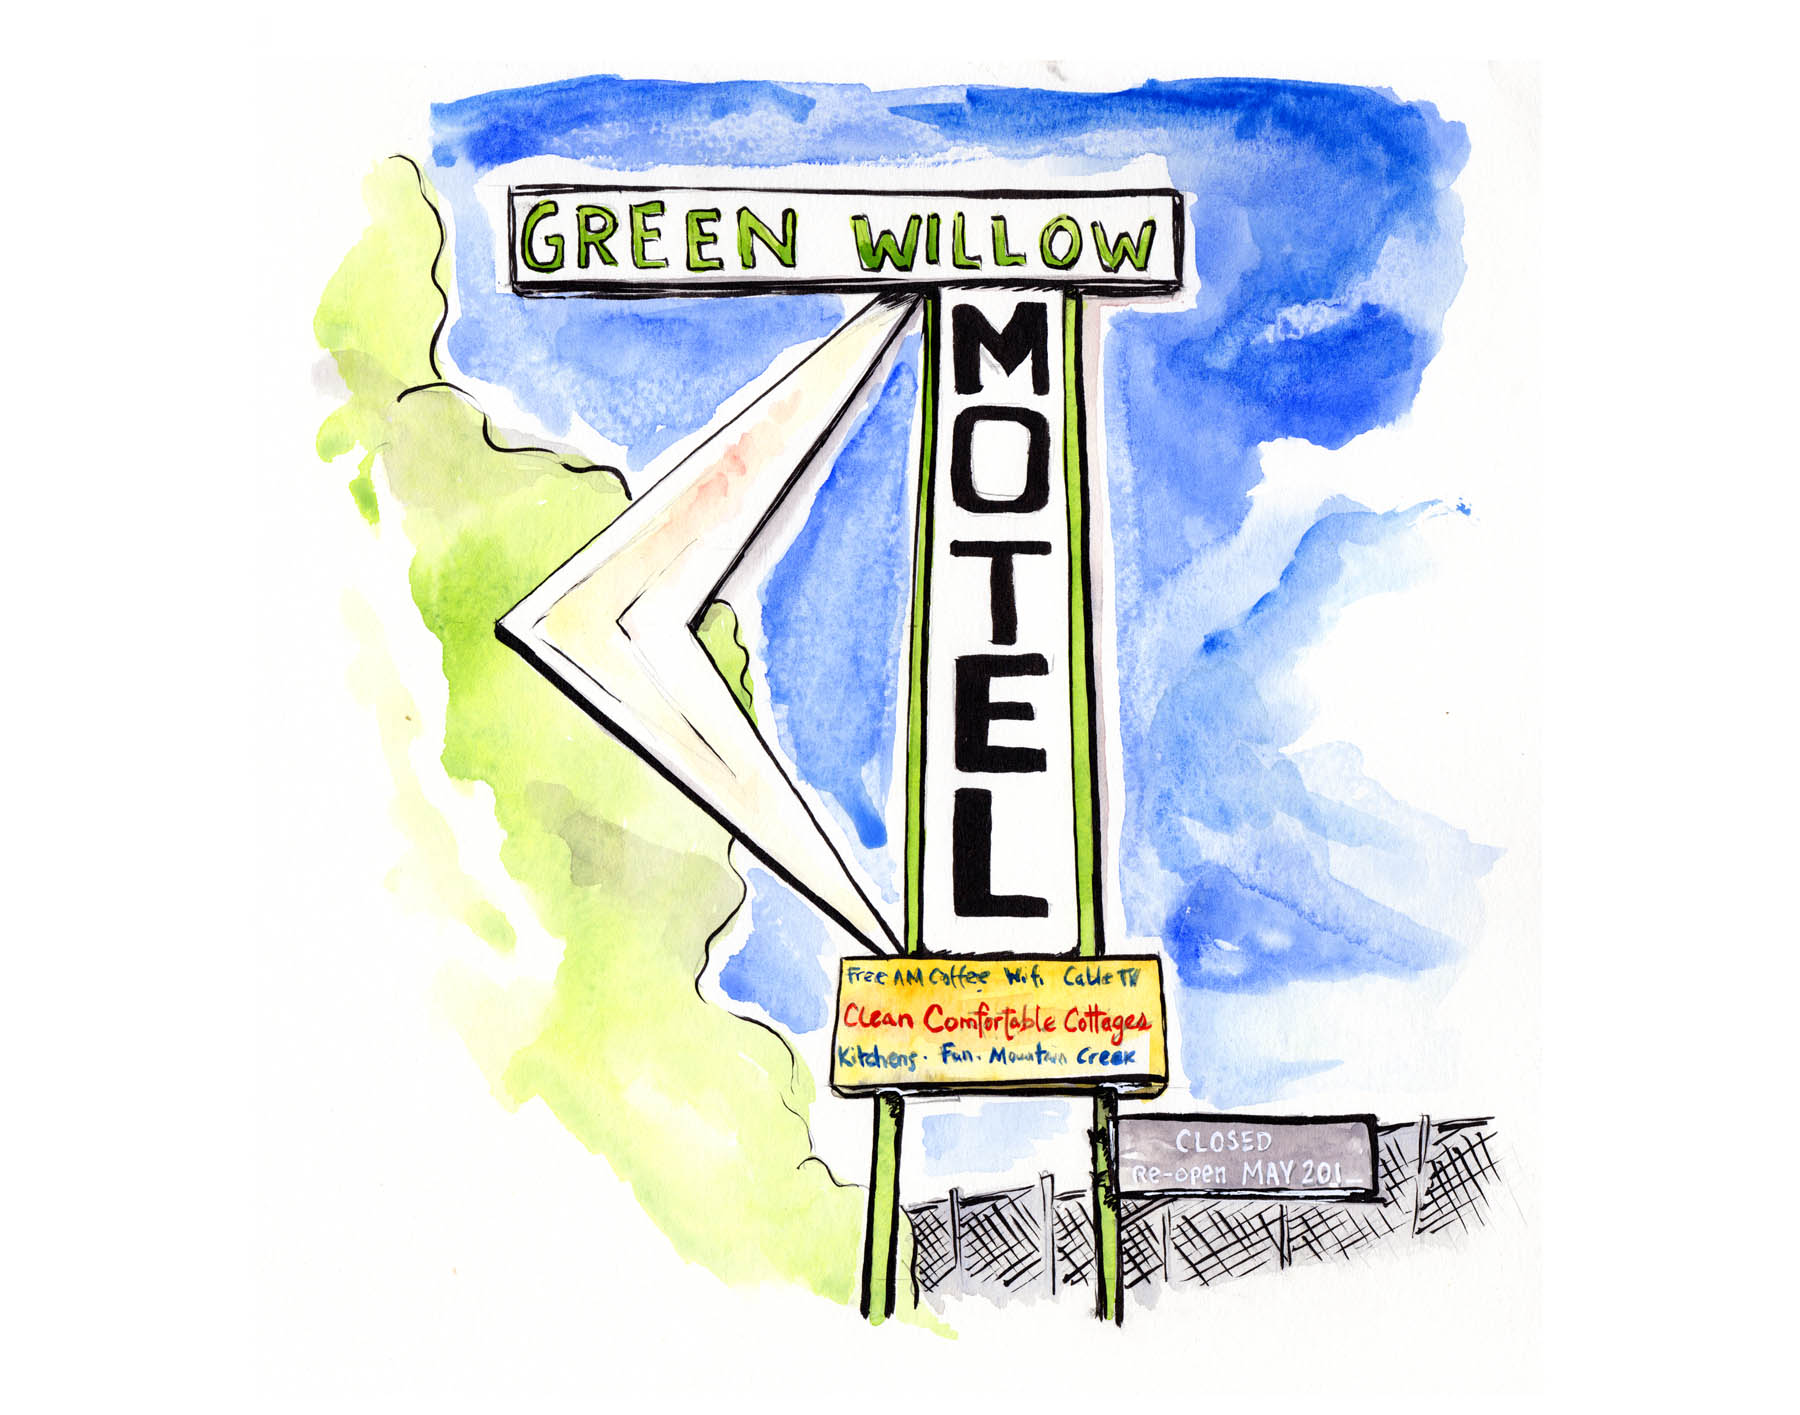 Green Willow Motel